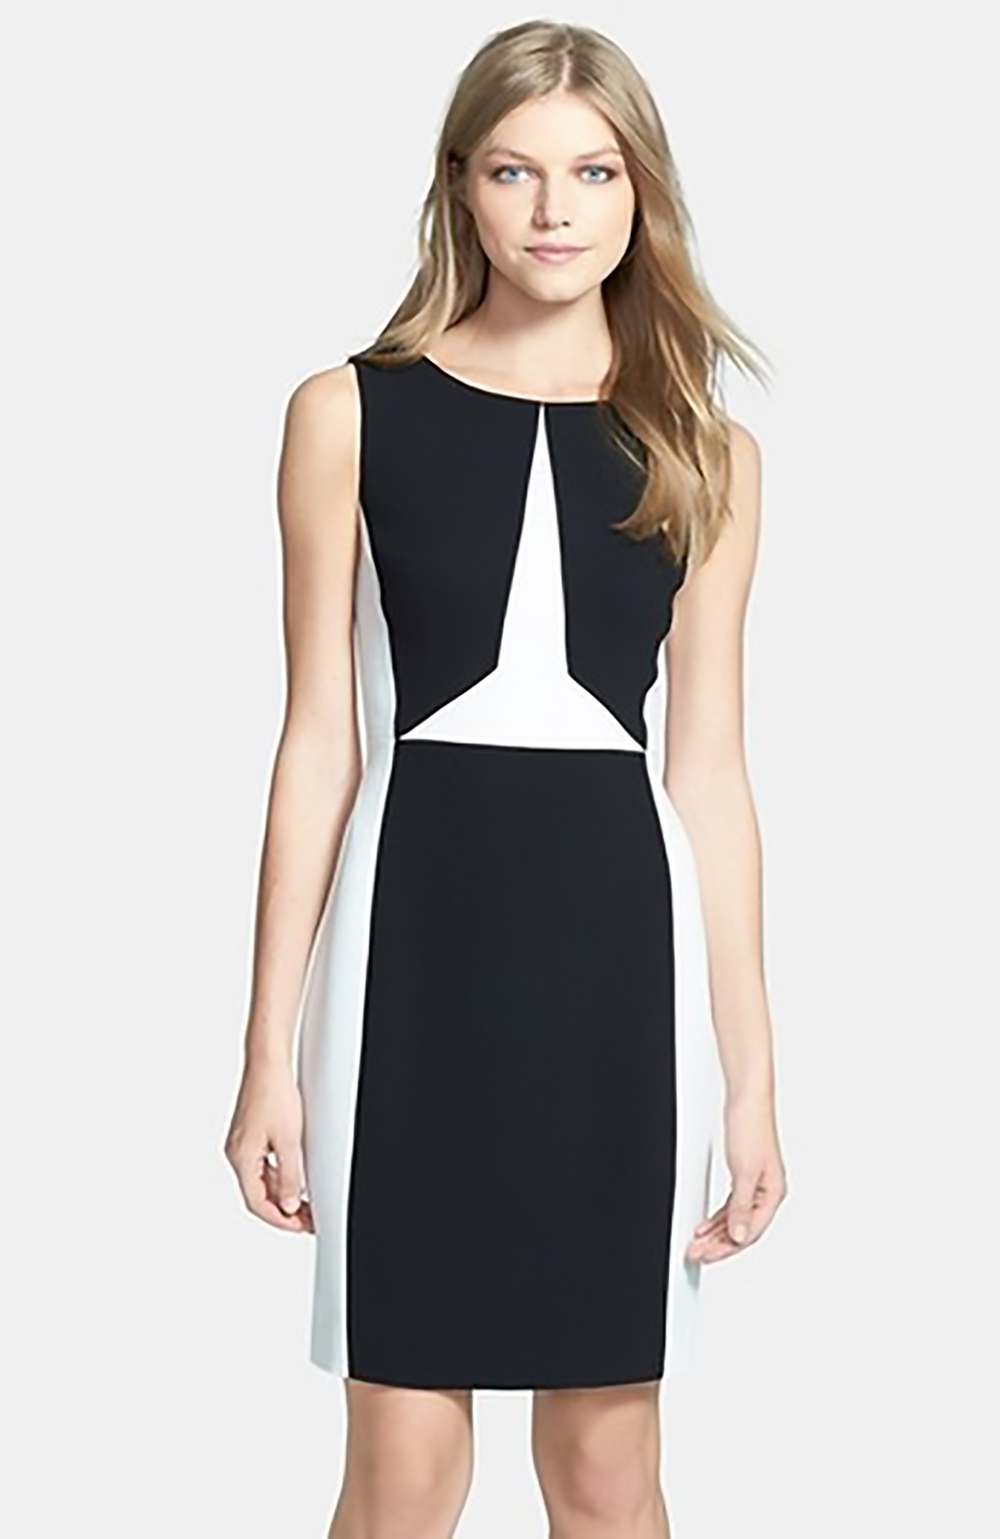 nordstrom ivanka trump colorblock sheath dress 1500.jpg